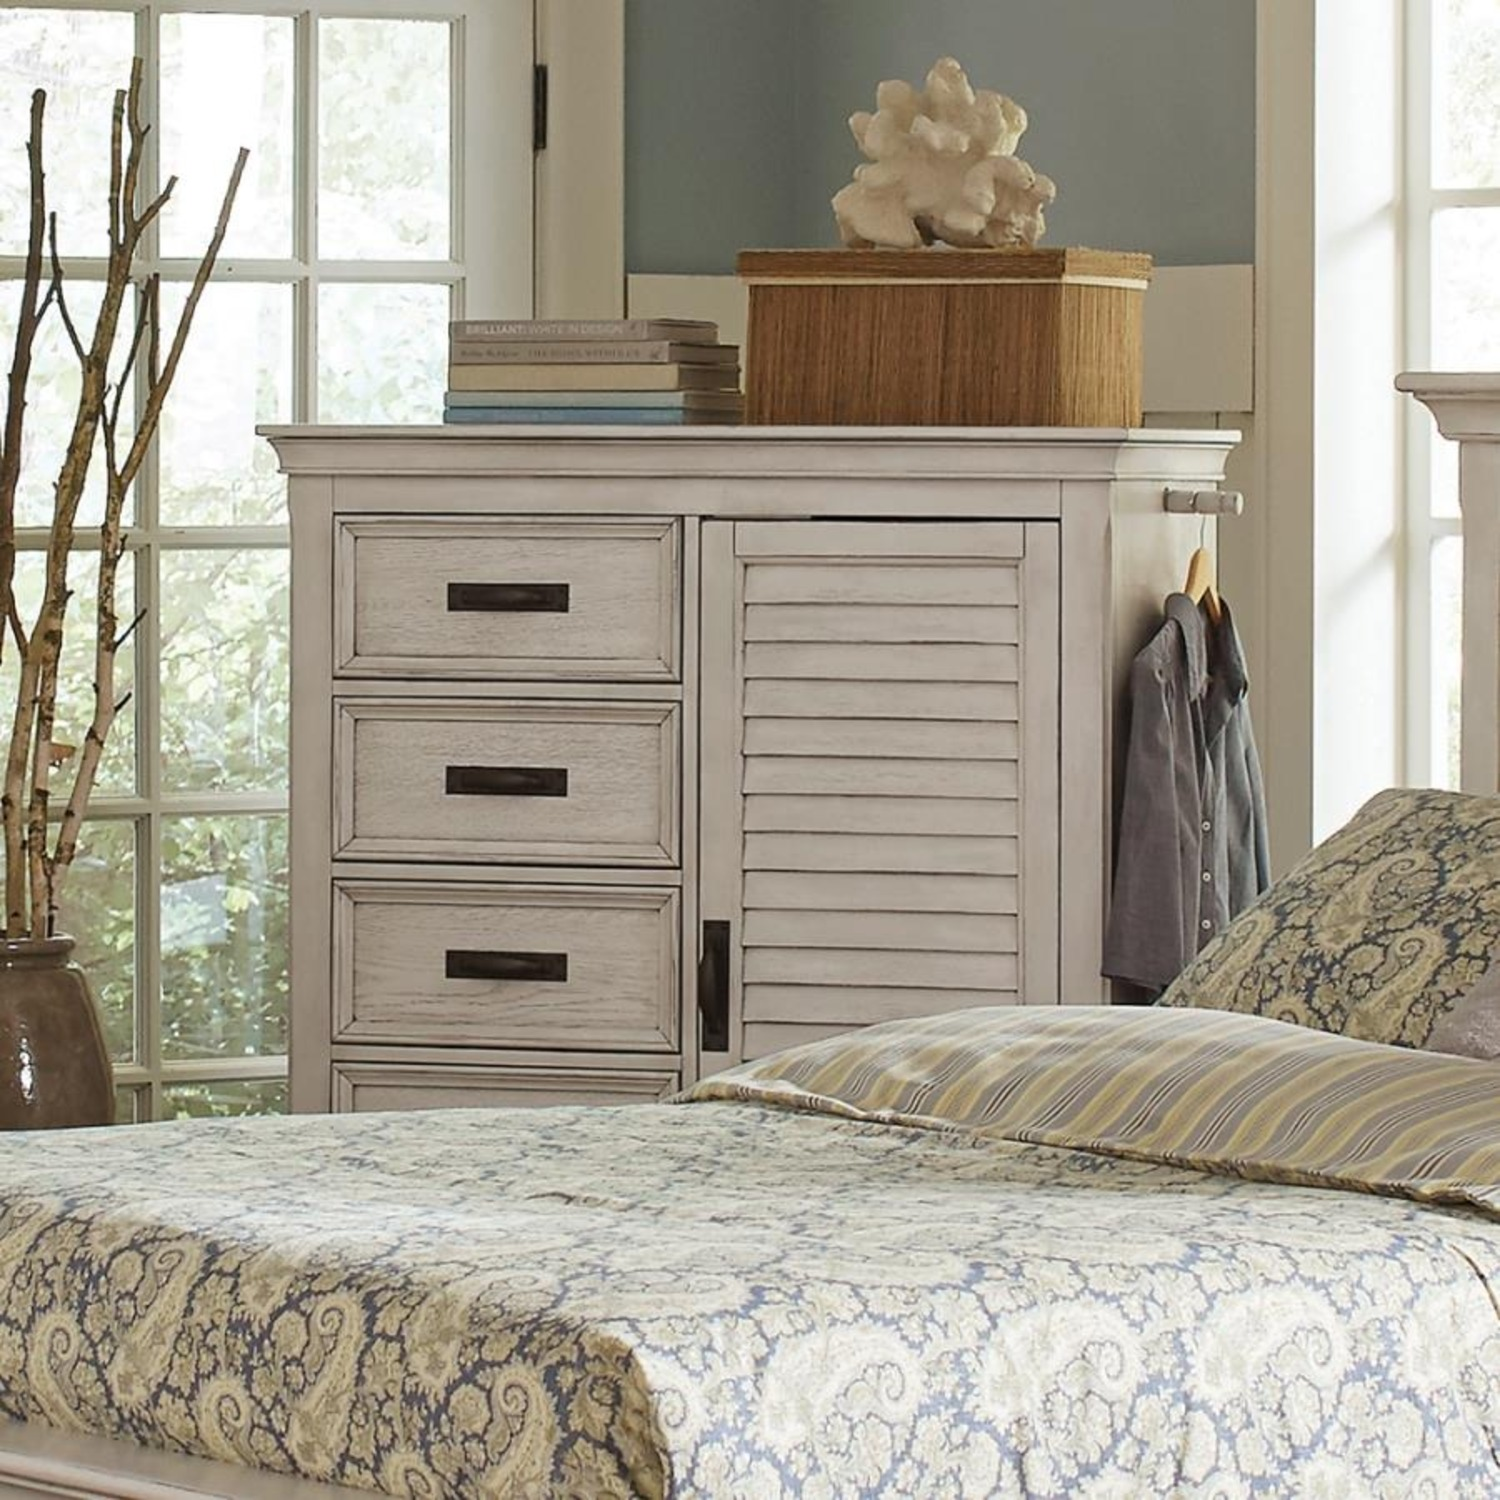 Chest In Warm Antique White Finish W/ Grey Accents - image-2